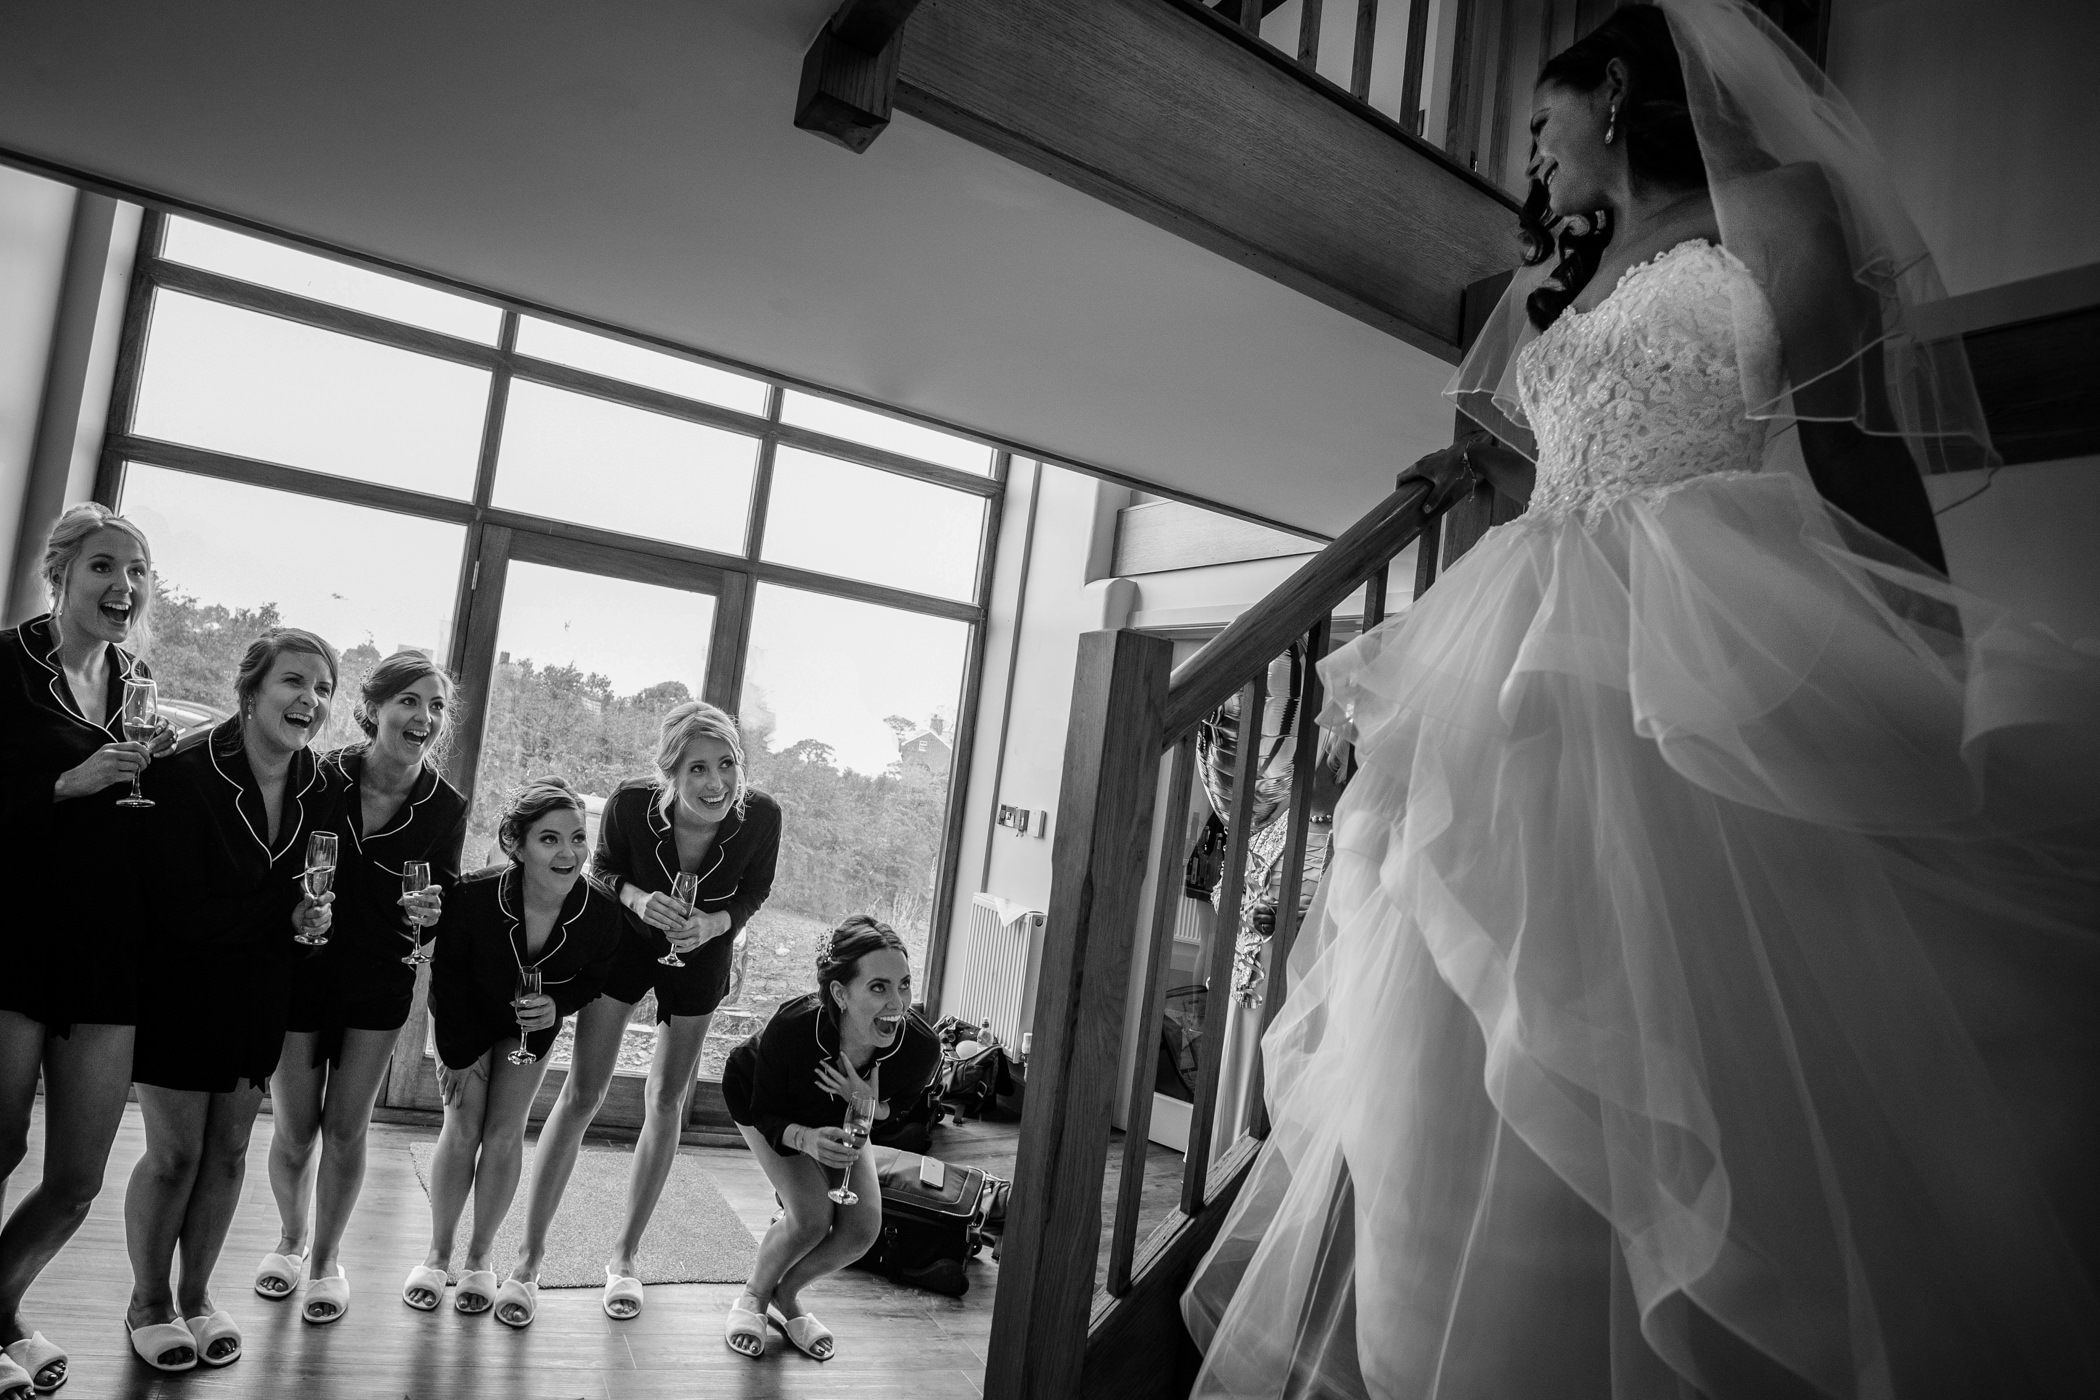 sansom-photography-becky-david-cheshire-wedding-4545